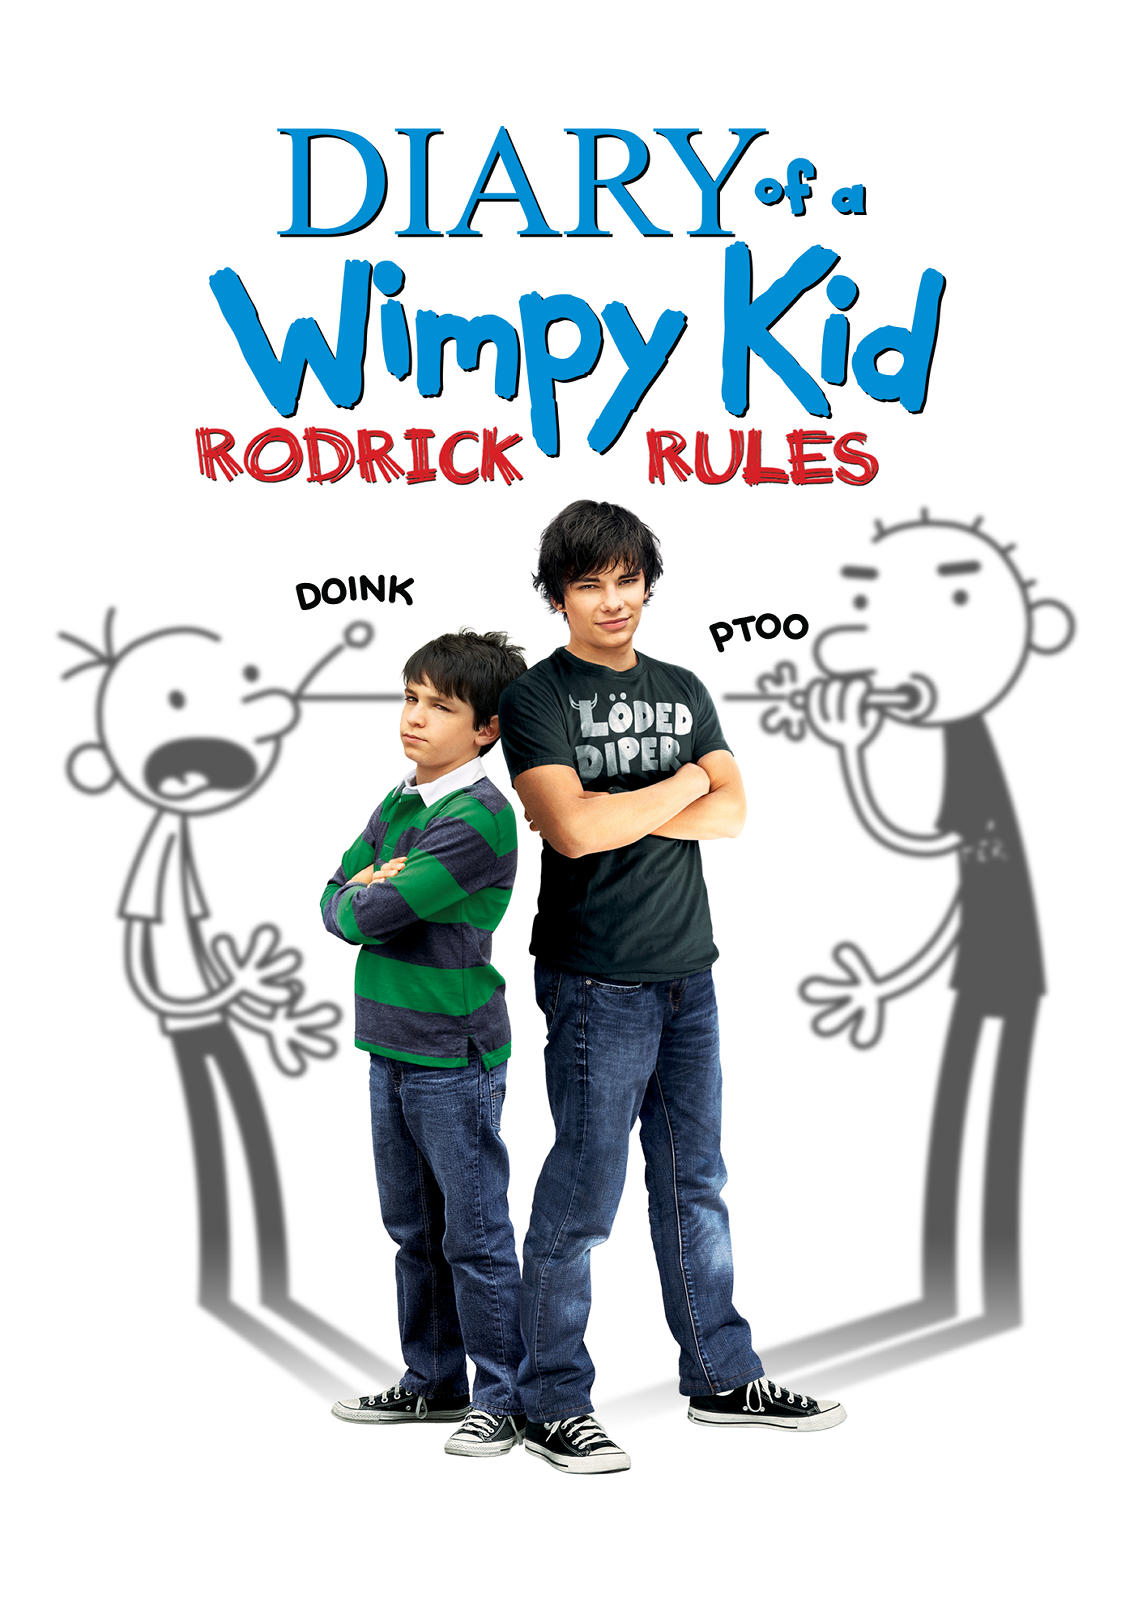 Diary Of A Wimpy Kid Rodrick Rules Lexile